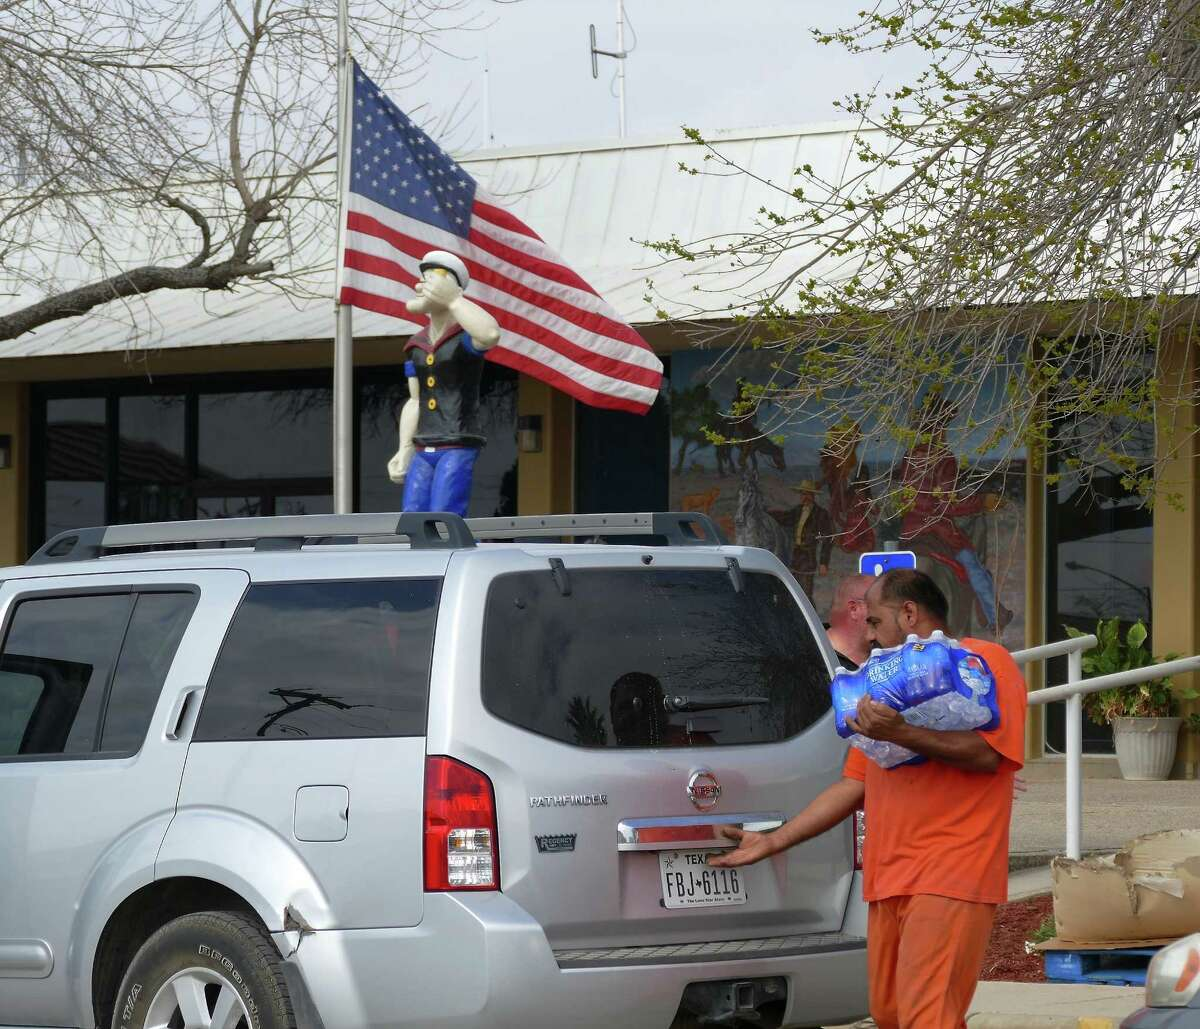 Jail inmates in Crystal City, Texas, help load donated water into vehicles on Friday, February 19, 2016. Tainted water began pouring out of faucets in the city this week during a system cleaning operation.